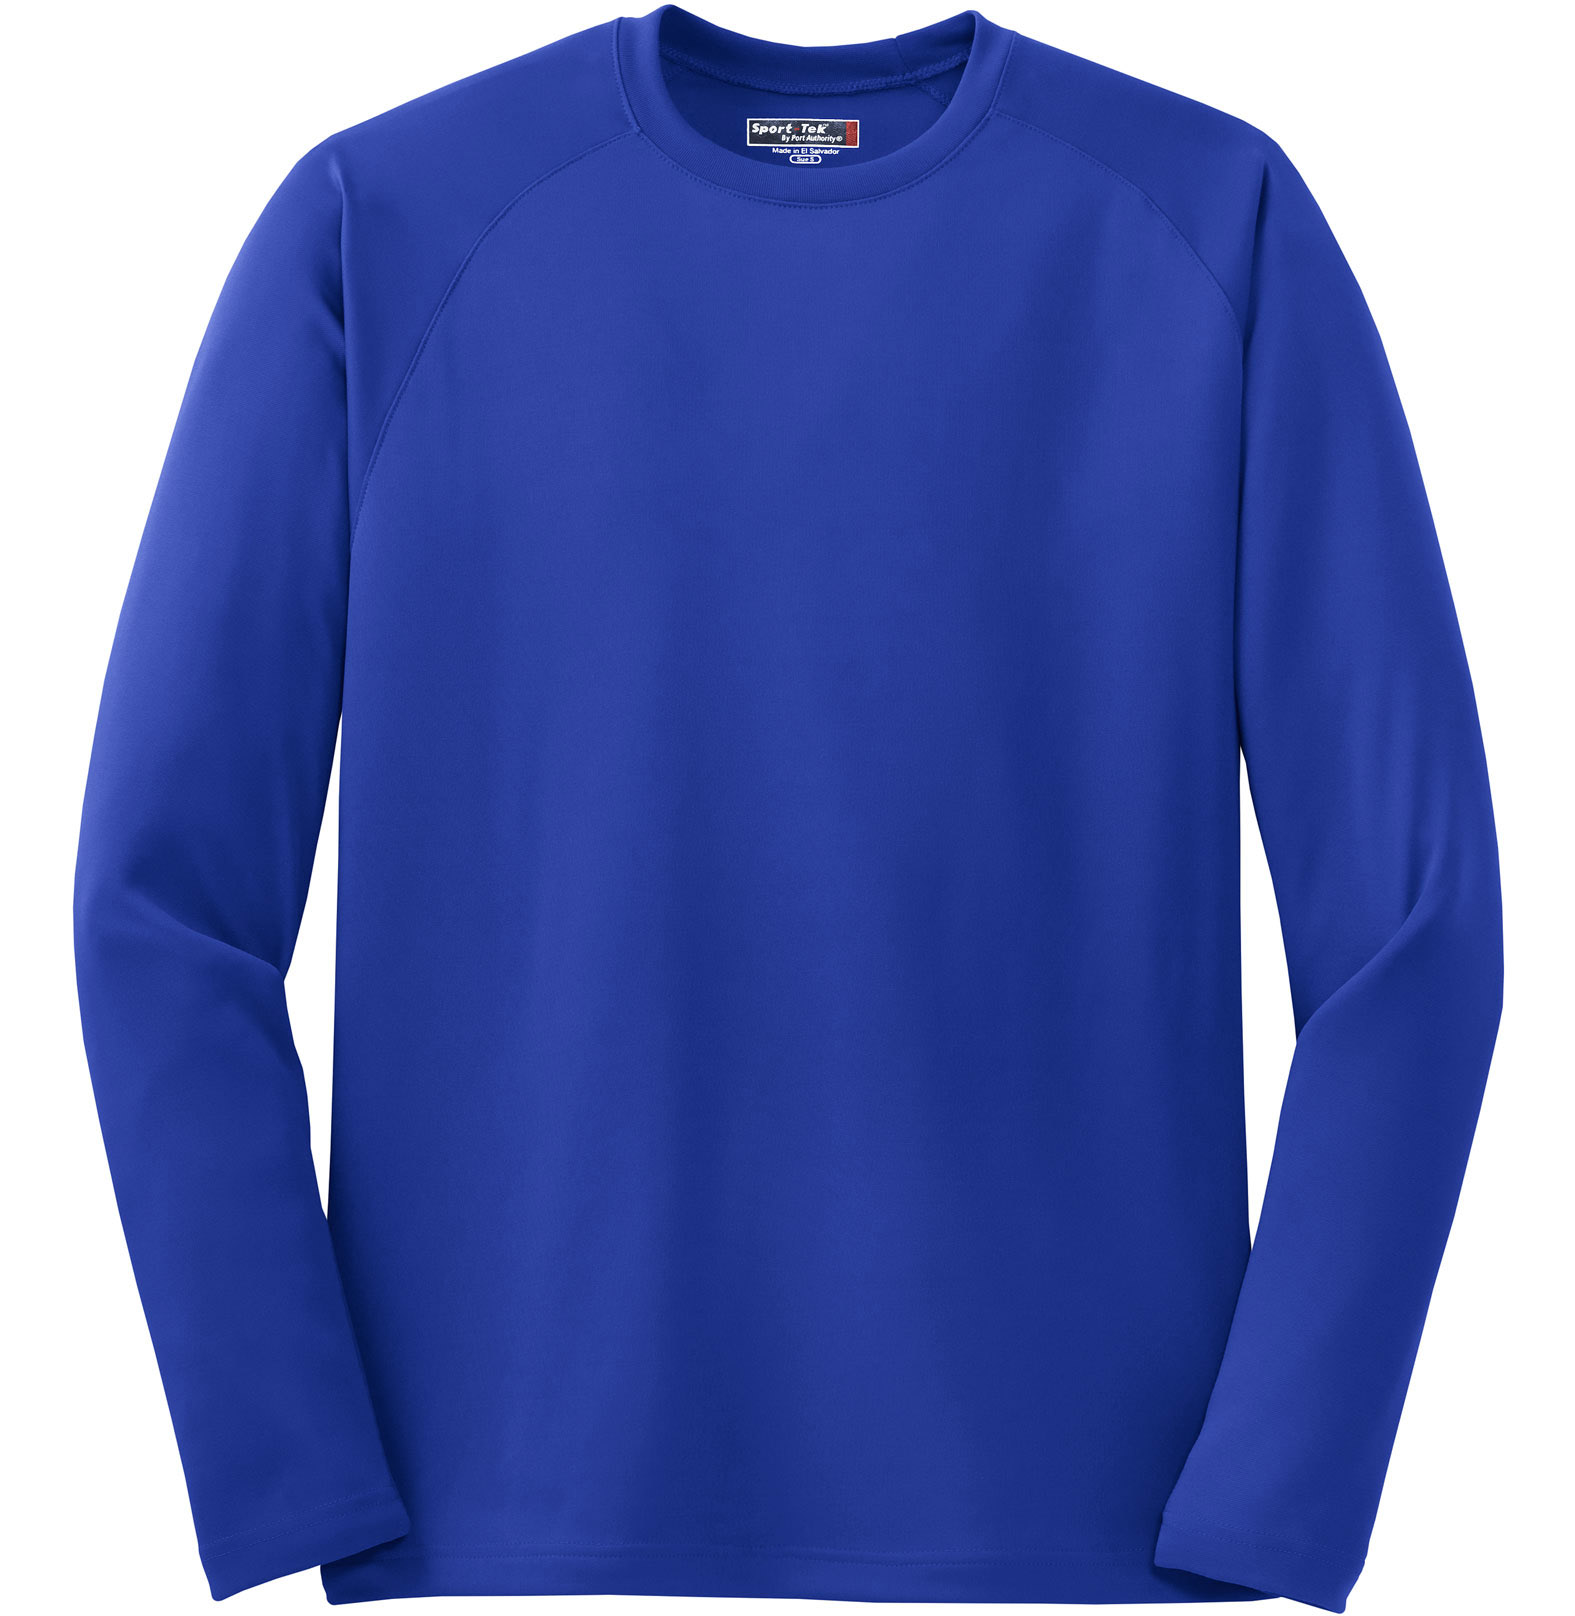 Blue Long Sleeve T-Shirts for Men. Shop men's long sleeve t-shirts at Zumiez, carrying long sleeve tees from the top brands in skate and street wear. Free shipping to any Zumiez store.